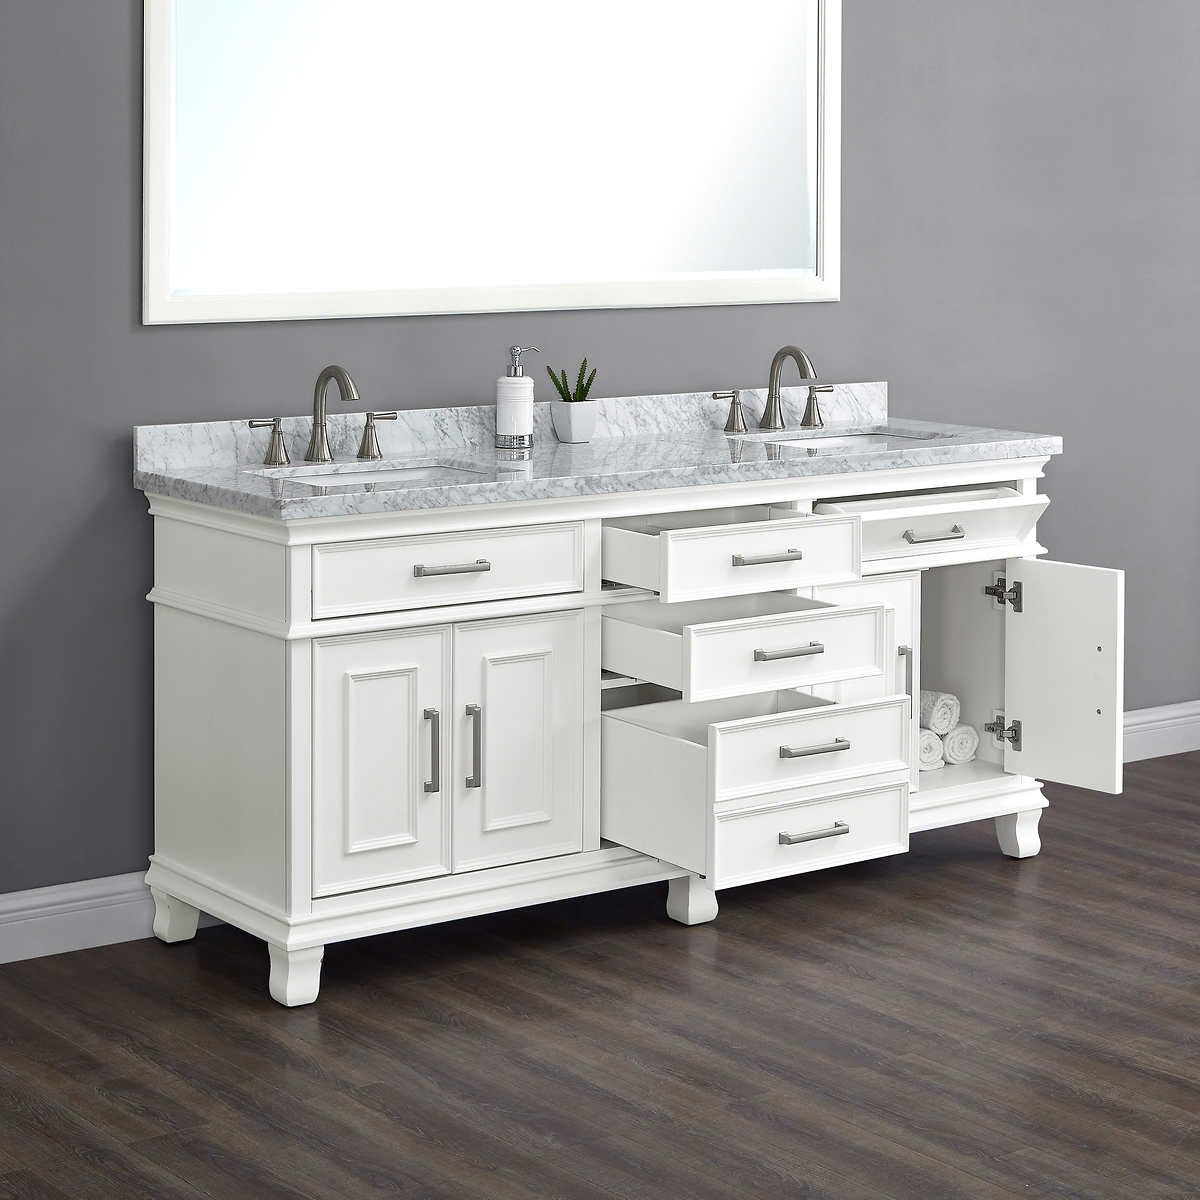 Brayden 72 Double Sink Bath Vanity By Mission Hills In 2020 With